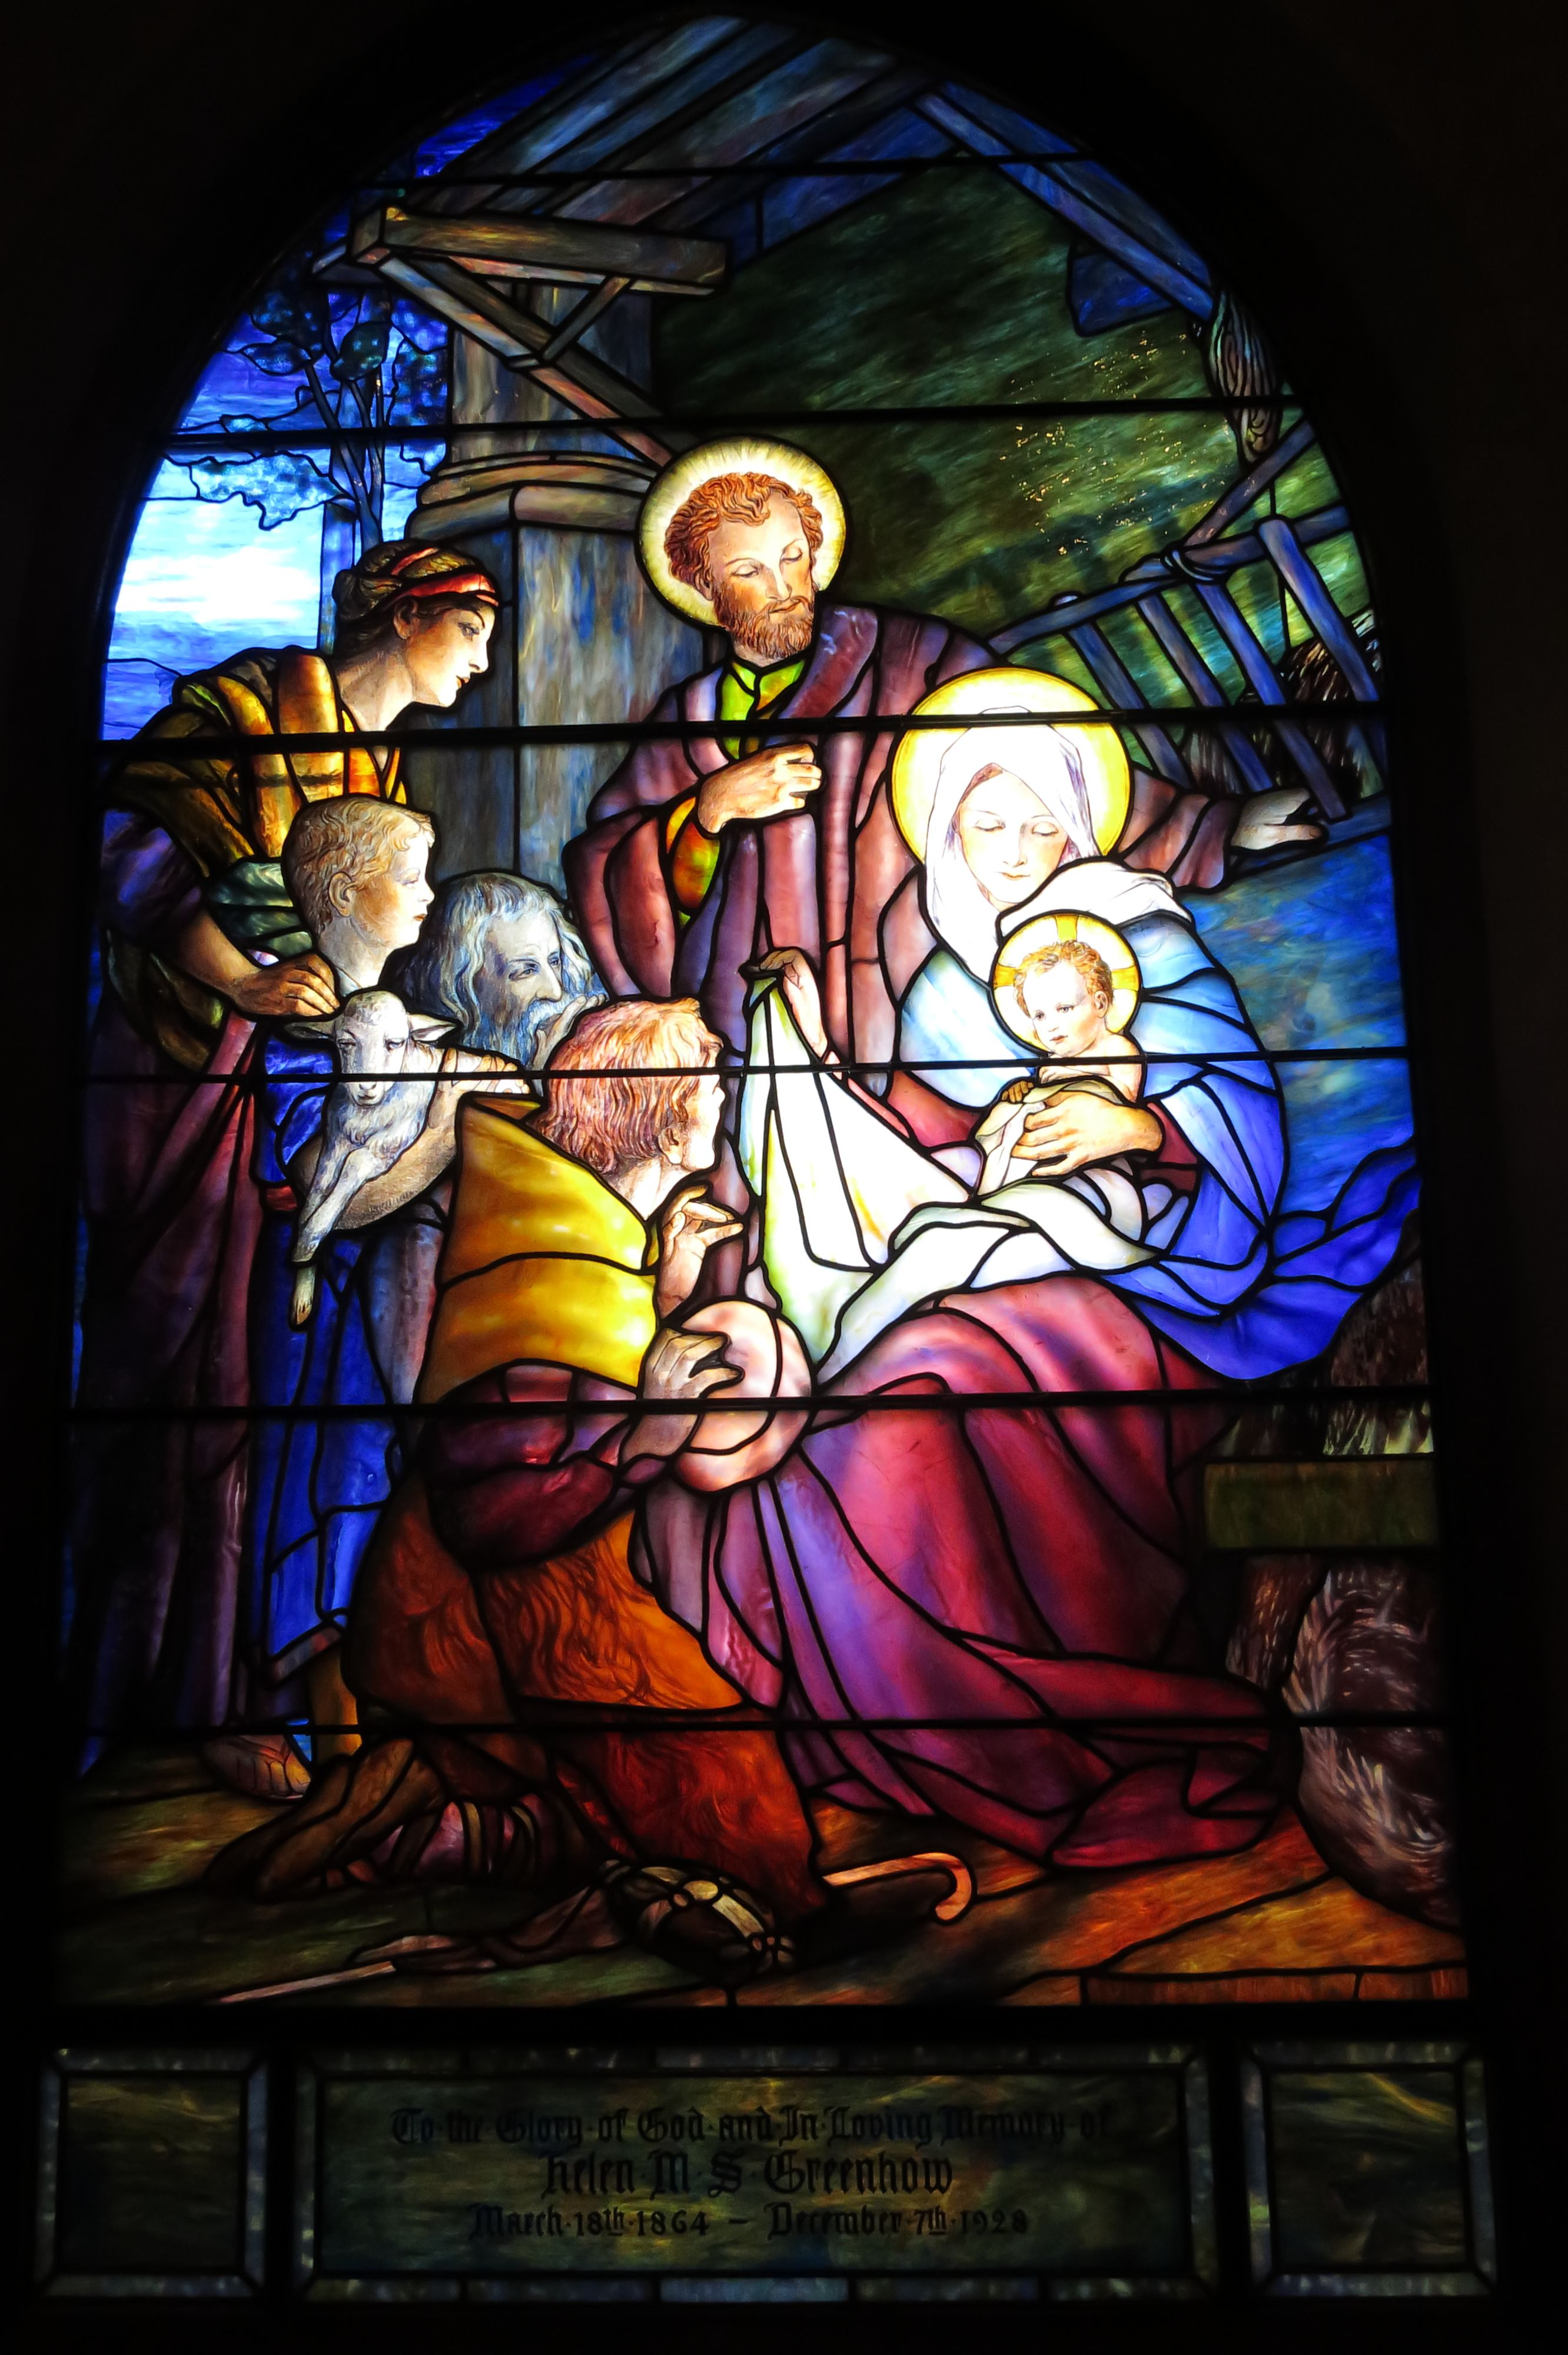 An Amazing Timeline Collection Of Tiffany Windows Reside At This Beautiful Church In Hornell Ny Along The Tiffany And Treasures Trail Fire Art Art Painting